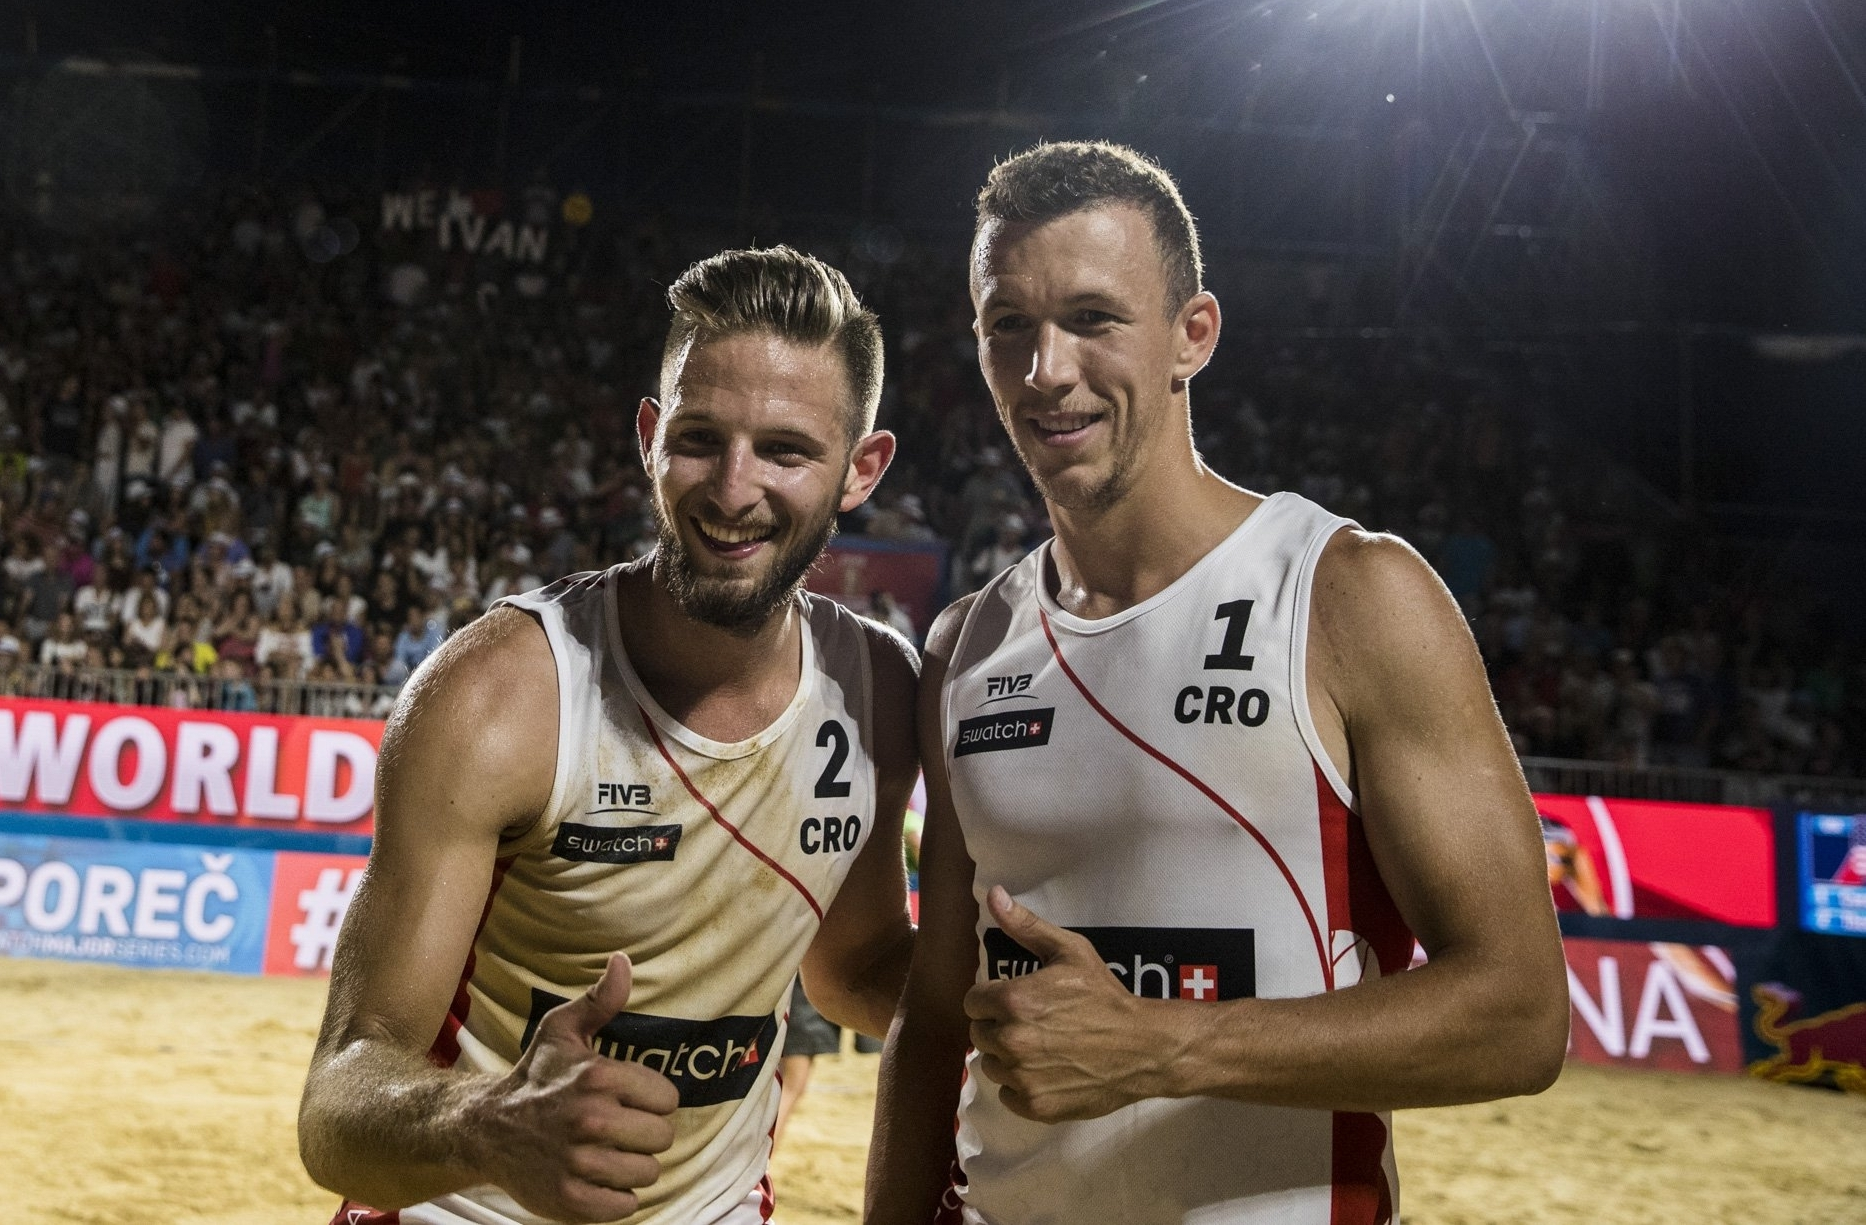 Ivan Perišić and partner Niksa Dell'Orco give the thumbs up after the game. Photocredit: Samo Vidic.